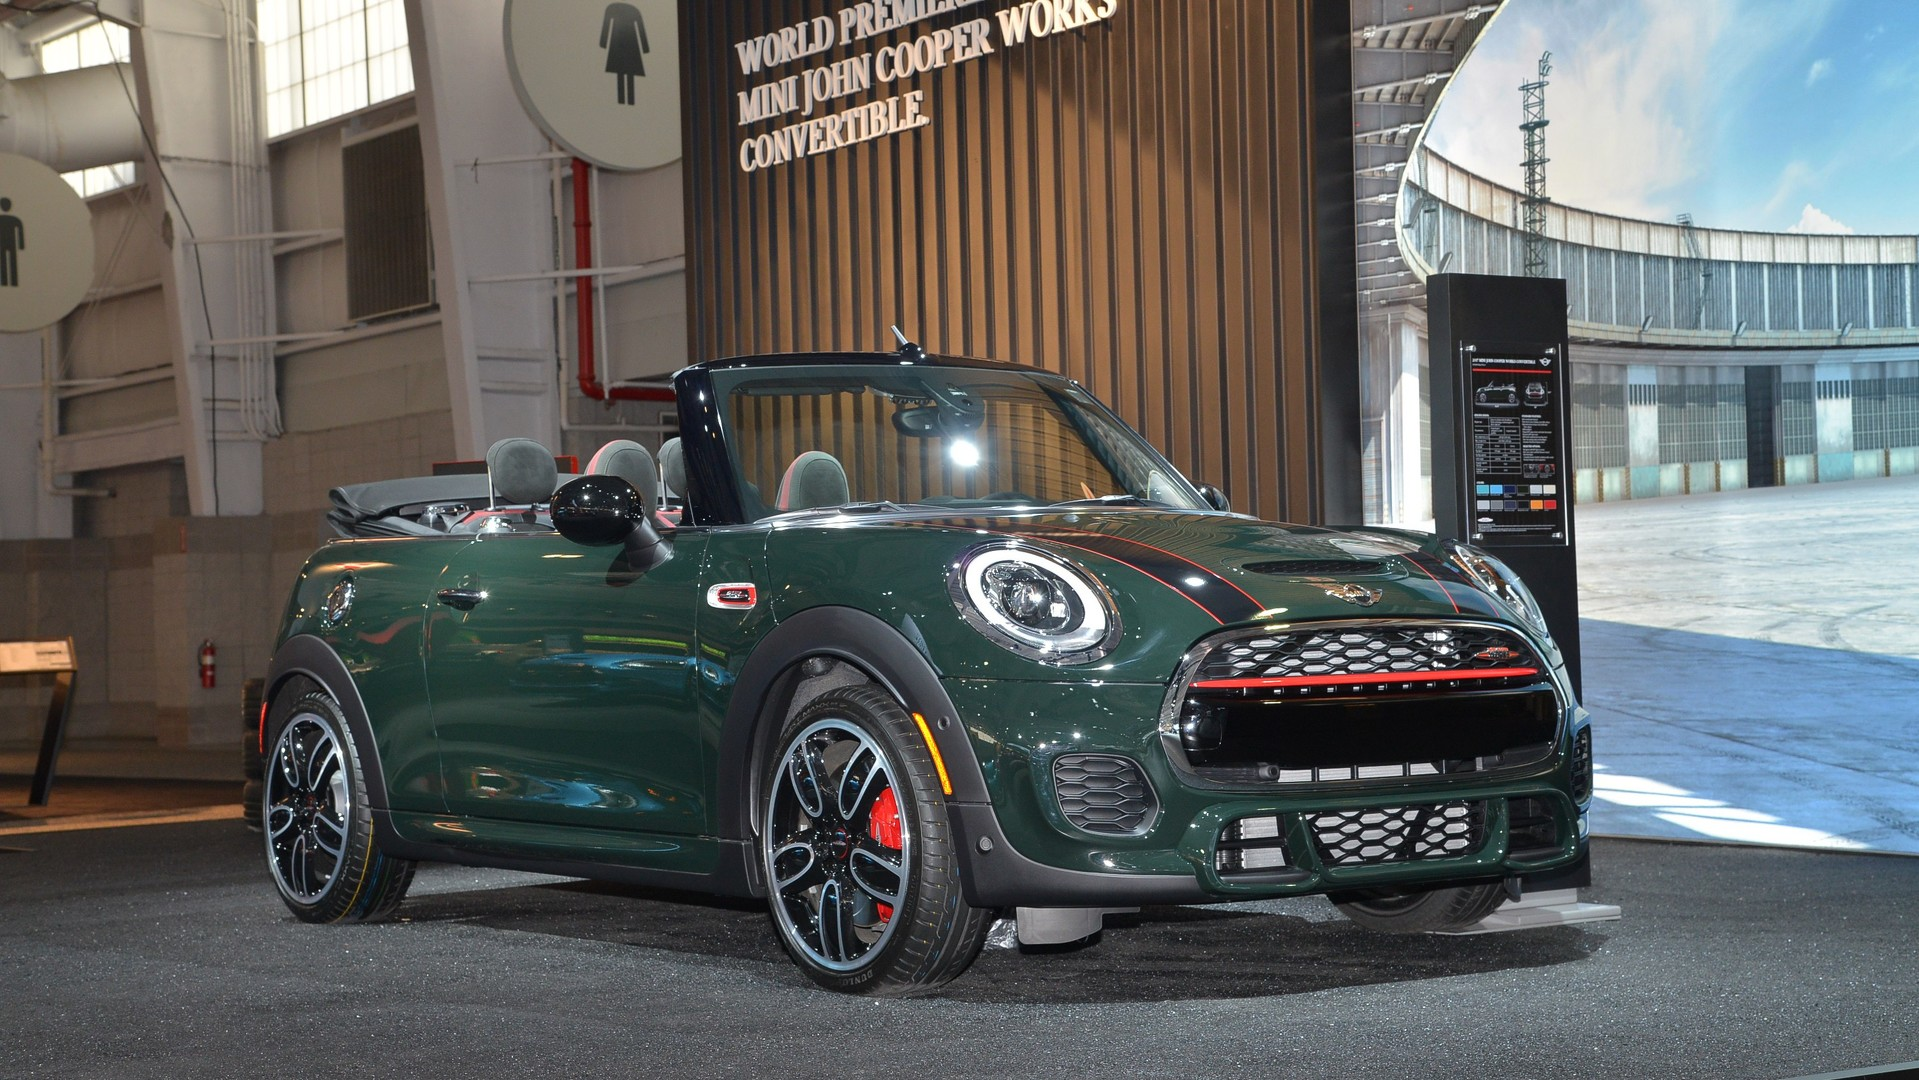 mini john cooper works convertible makes public debut in new york. Black Bedroom Furniture Sets. Home Design Ideas